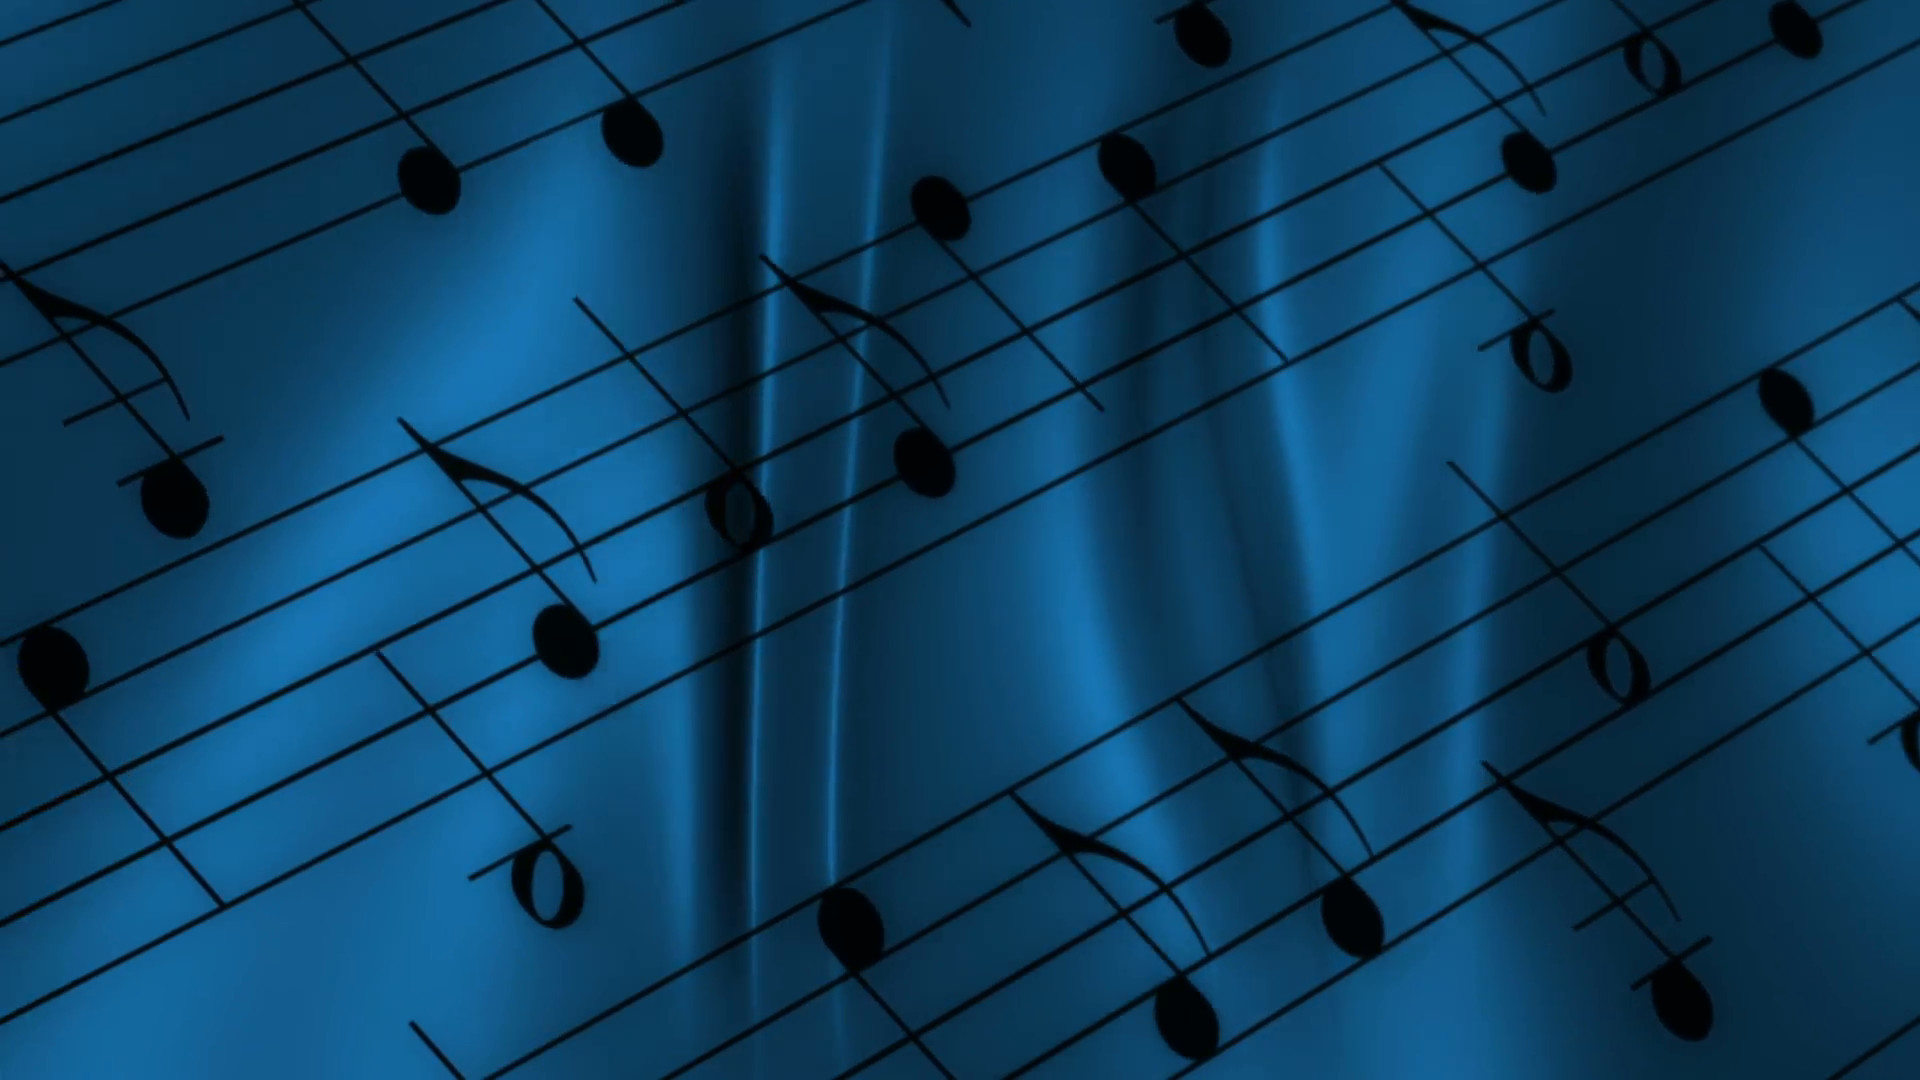 Music Note Backgrounds: Music Background Image ·① WallpaperTag